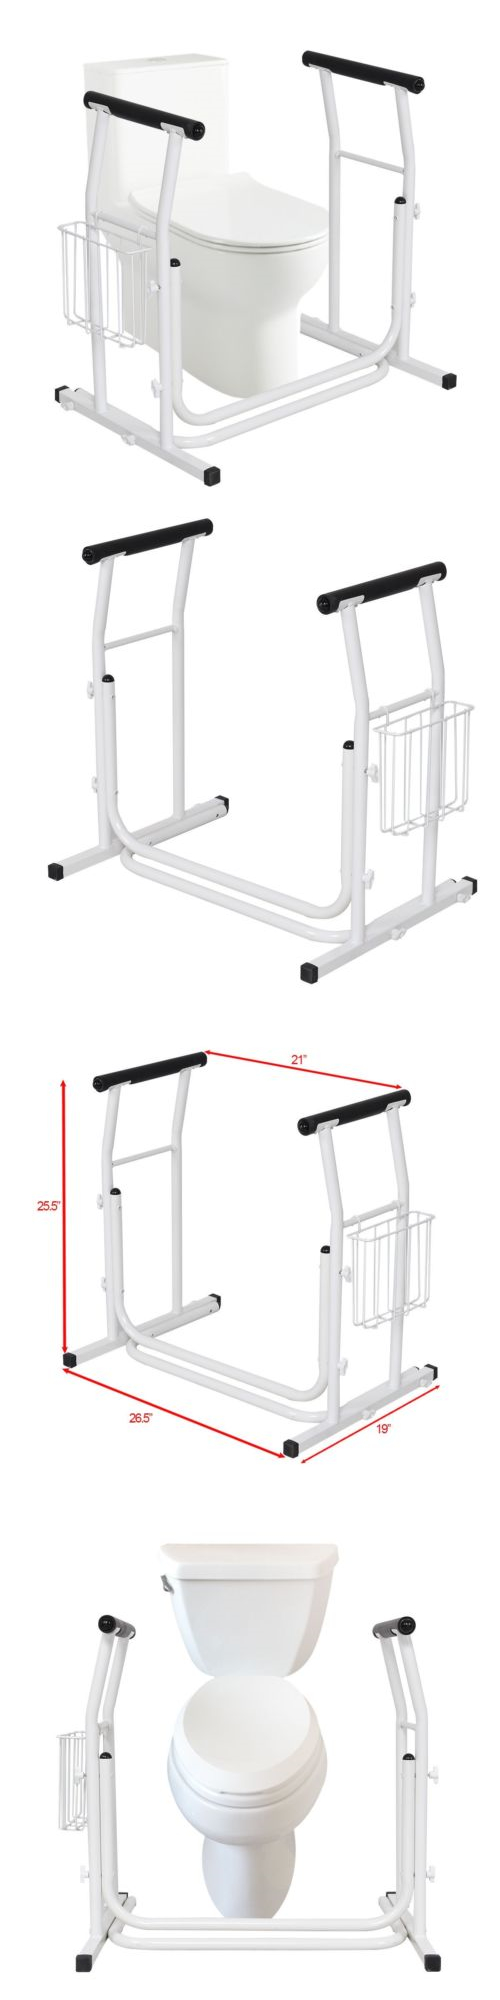 Handles and rails toilet free standing rail safety support grab bar